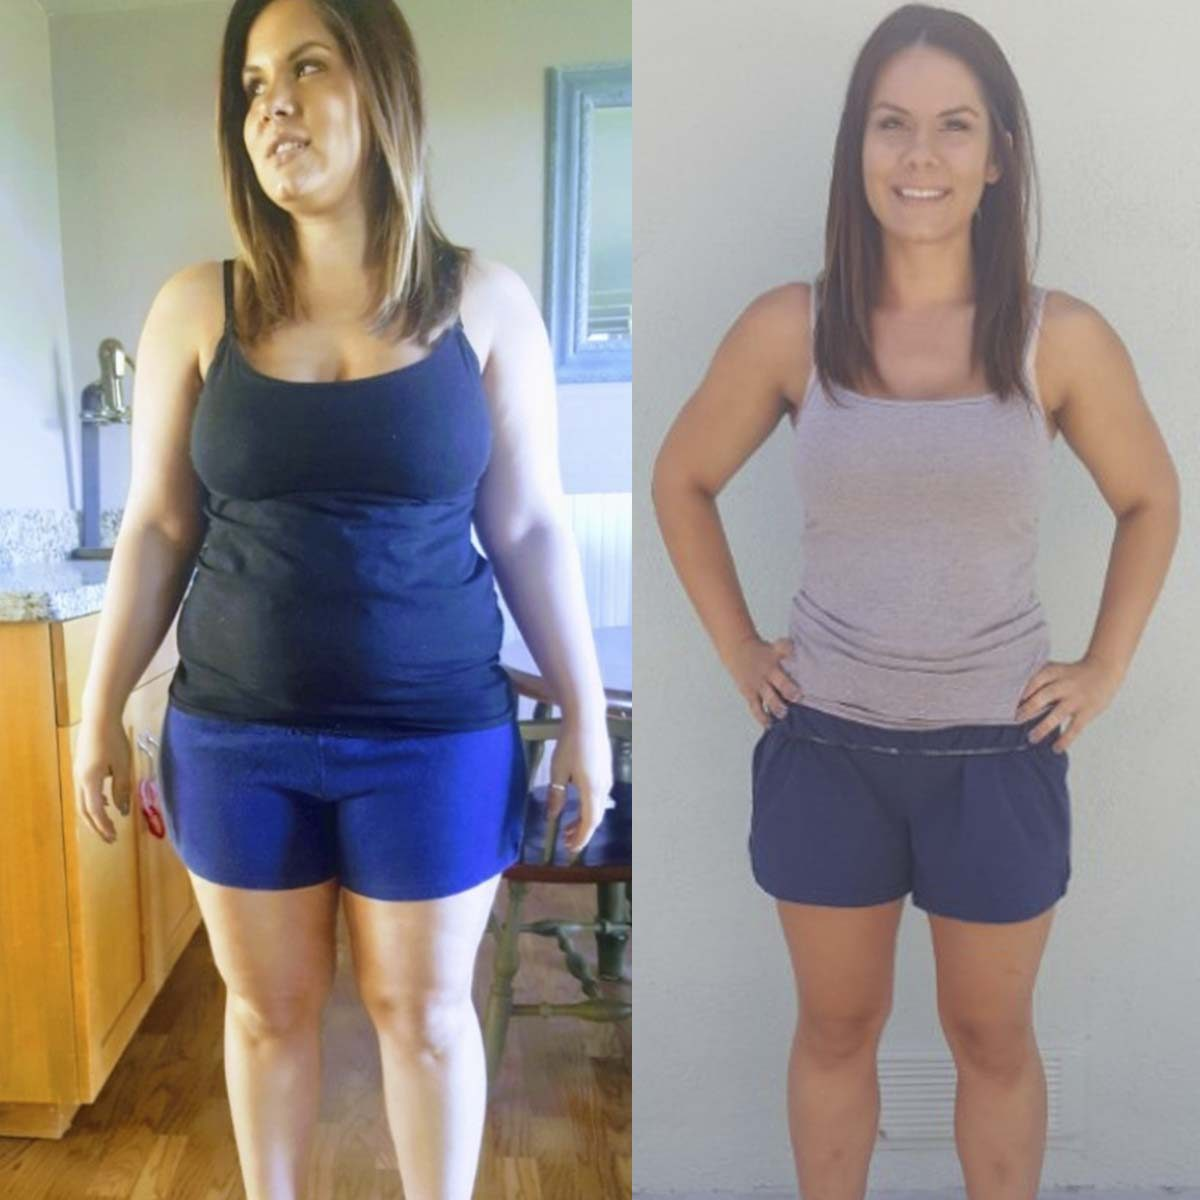 Diet Books That Helped These Women Lose 5+ Pounds  The Healthy